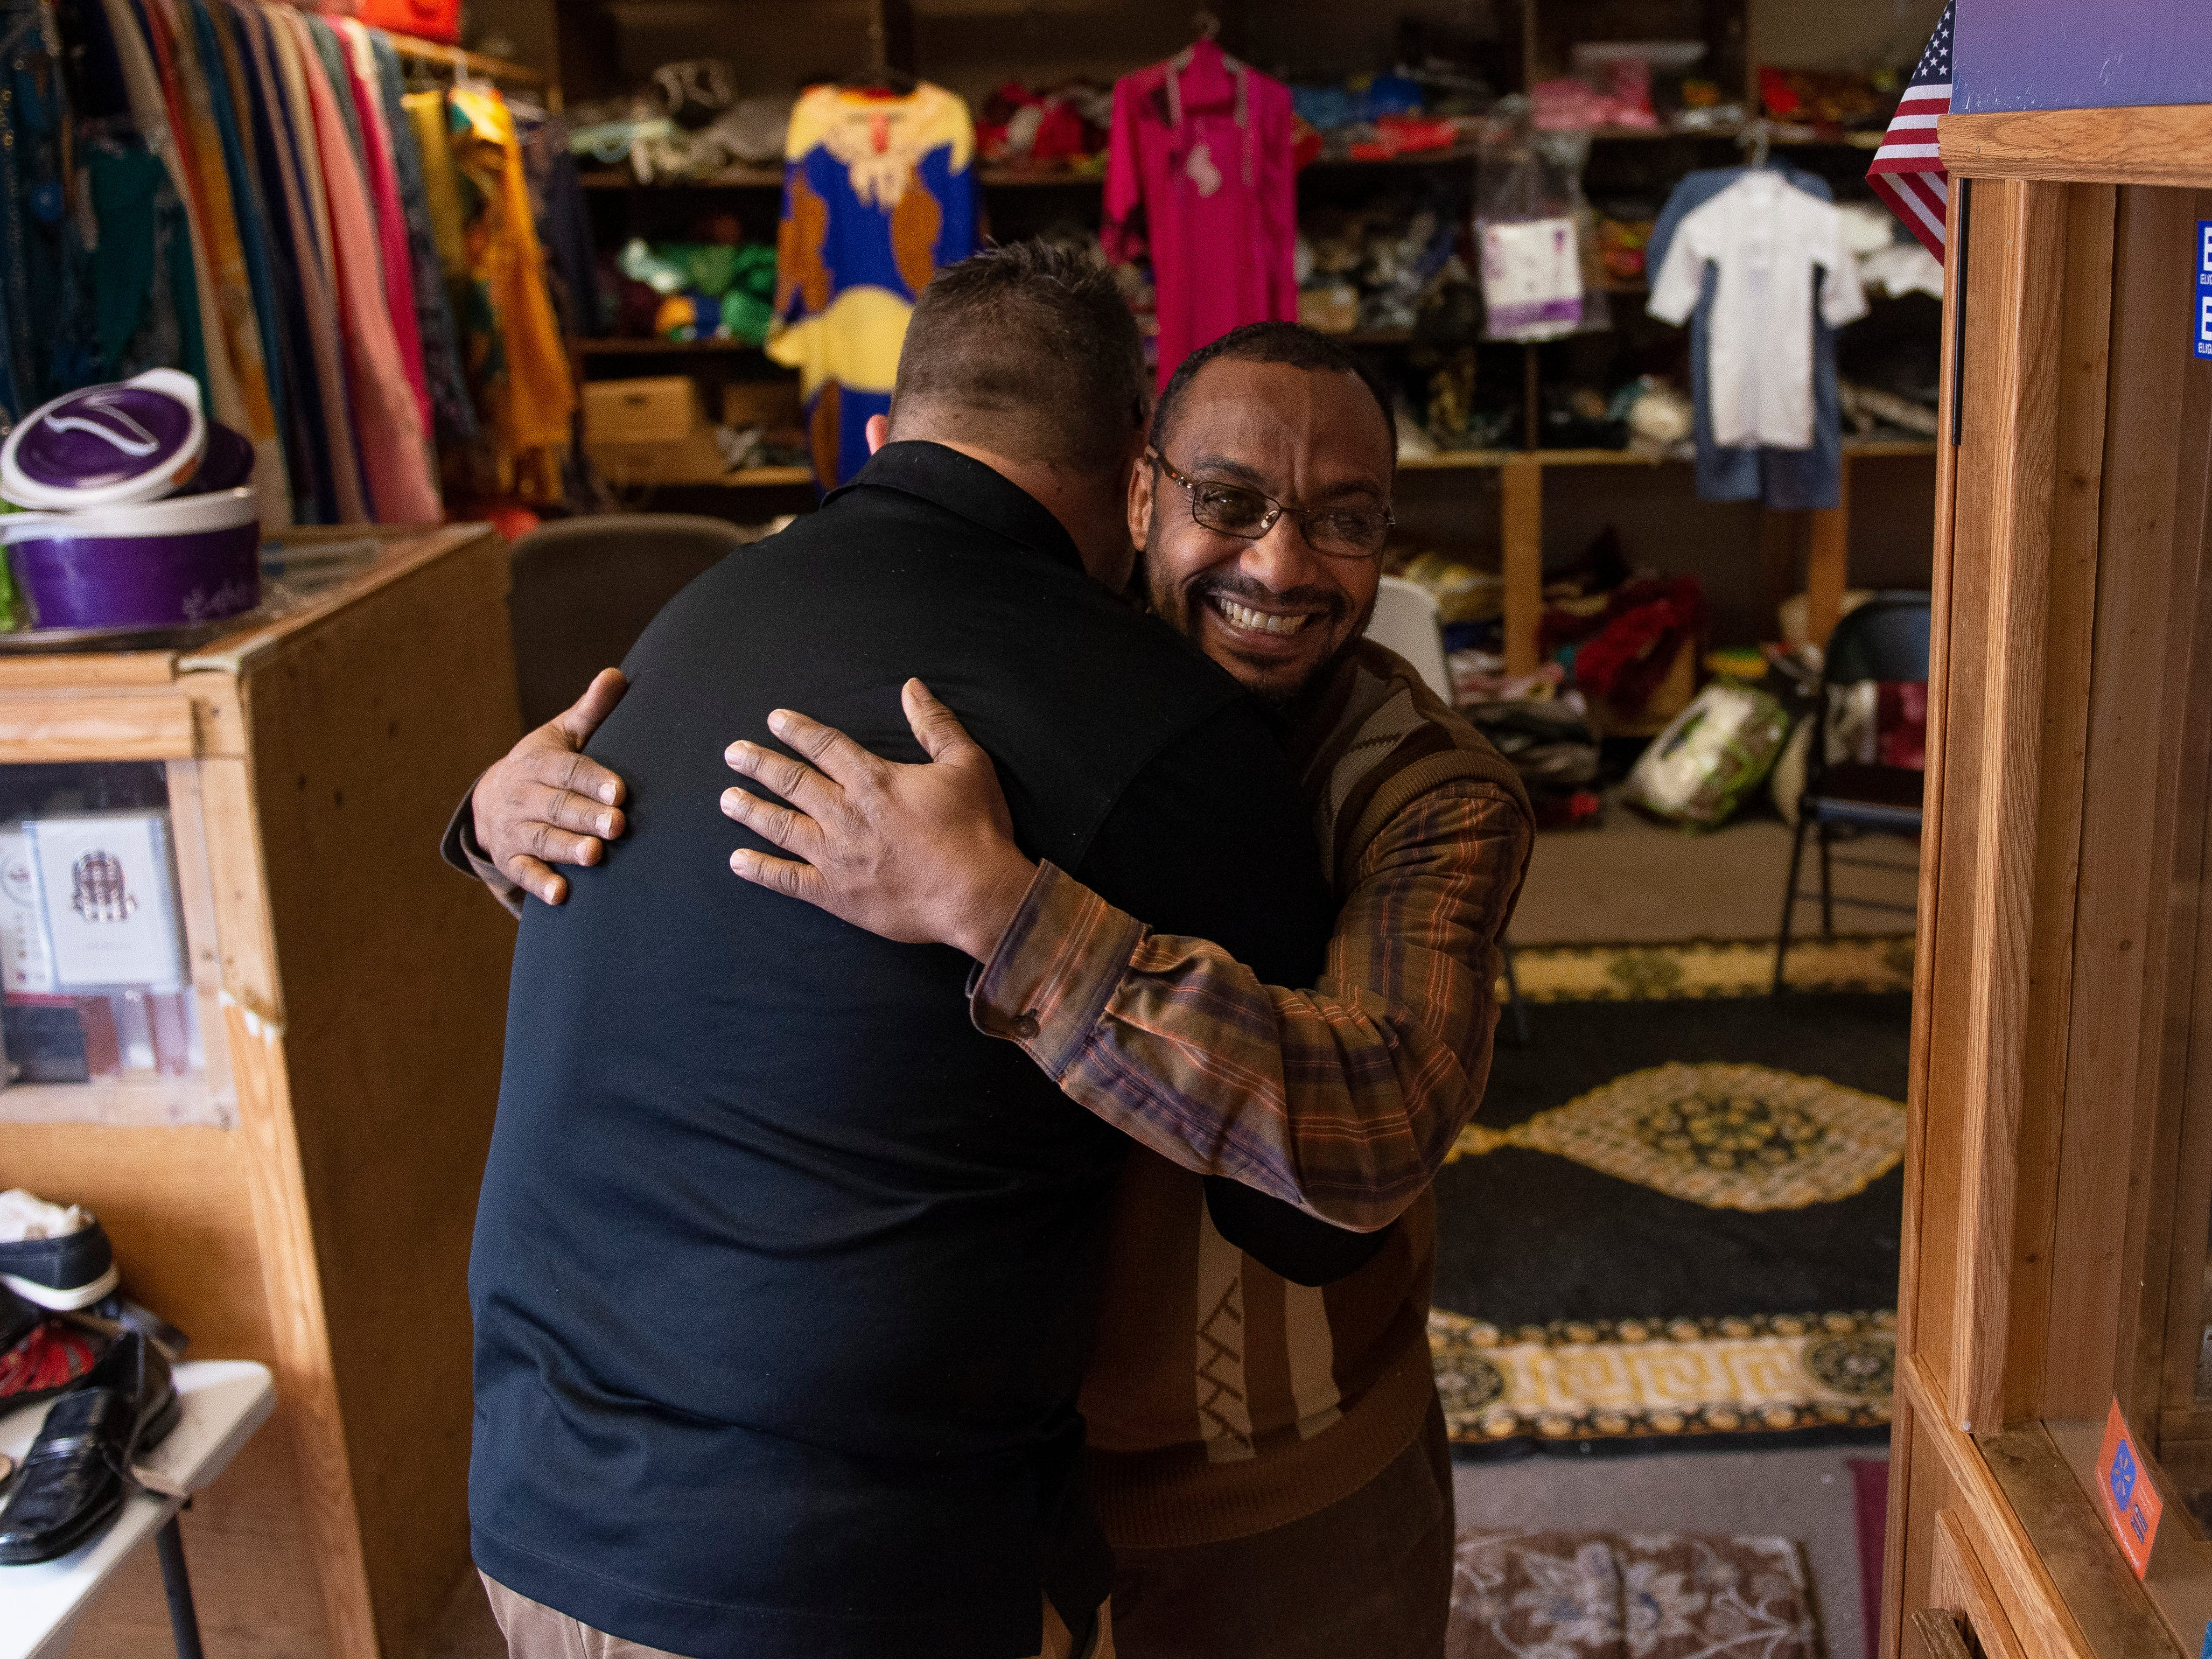 Kearny County Hospital CEO Benjamin Anderson, left, and African Shop employee Adam Keynan hug as Anderson shops for groceries at the store Thursday, Jan. 24, 2019.